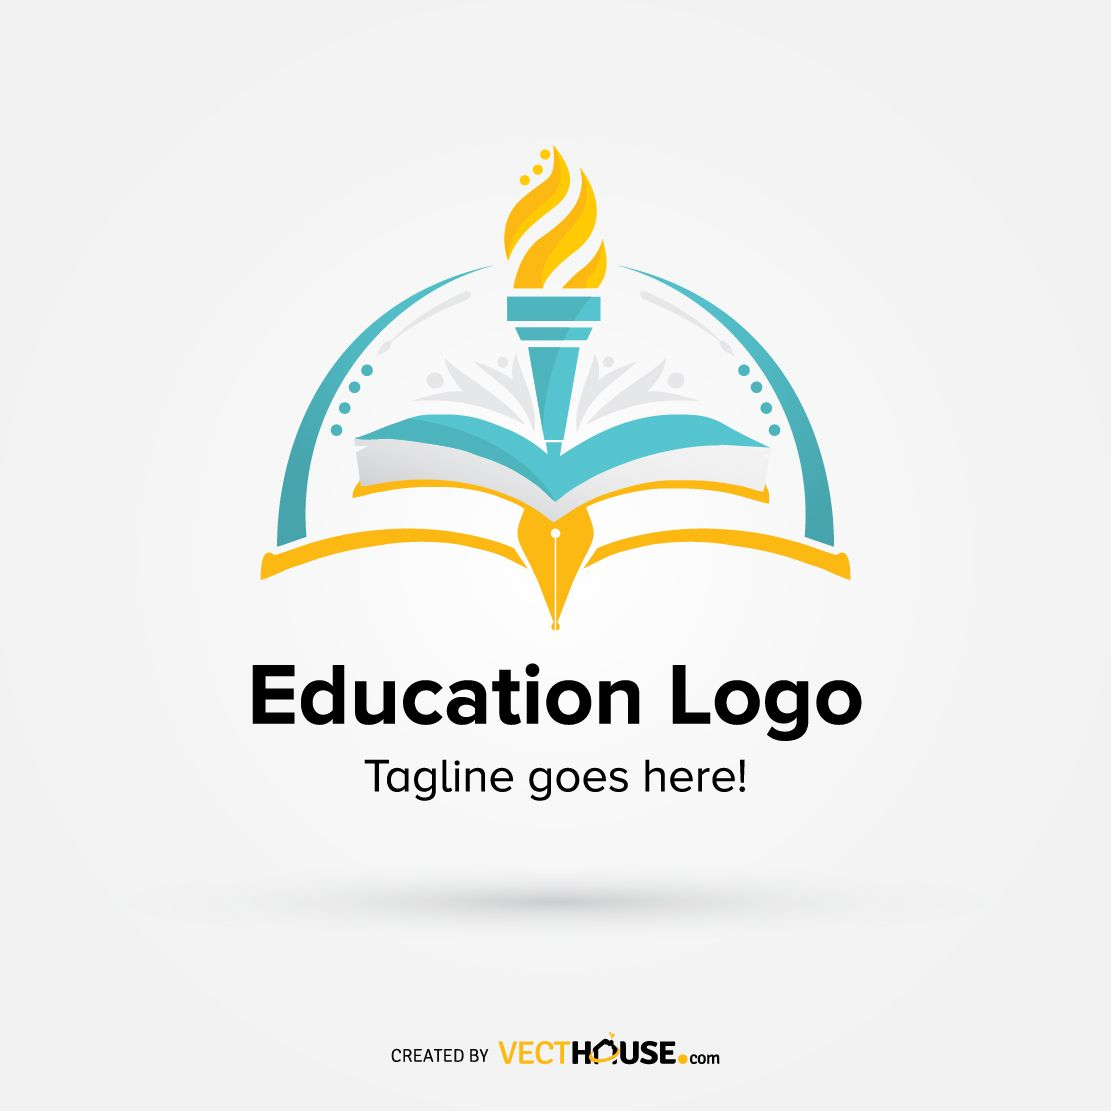 Education Logo Design Vecthouse Education Logo Education Logo